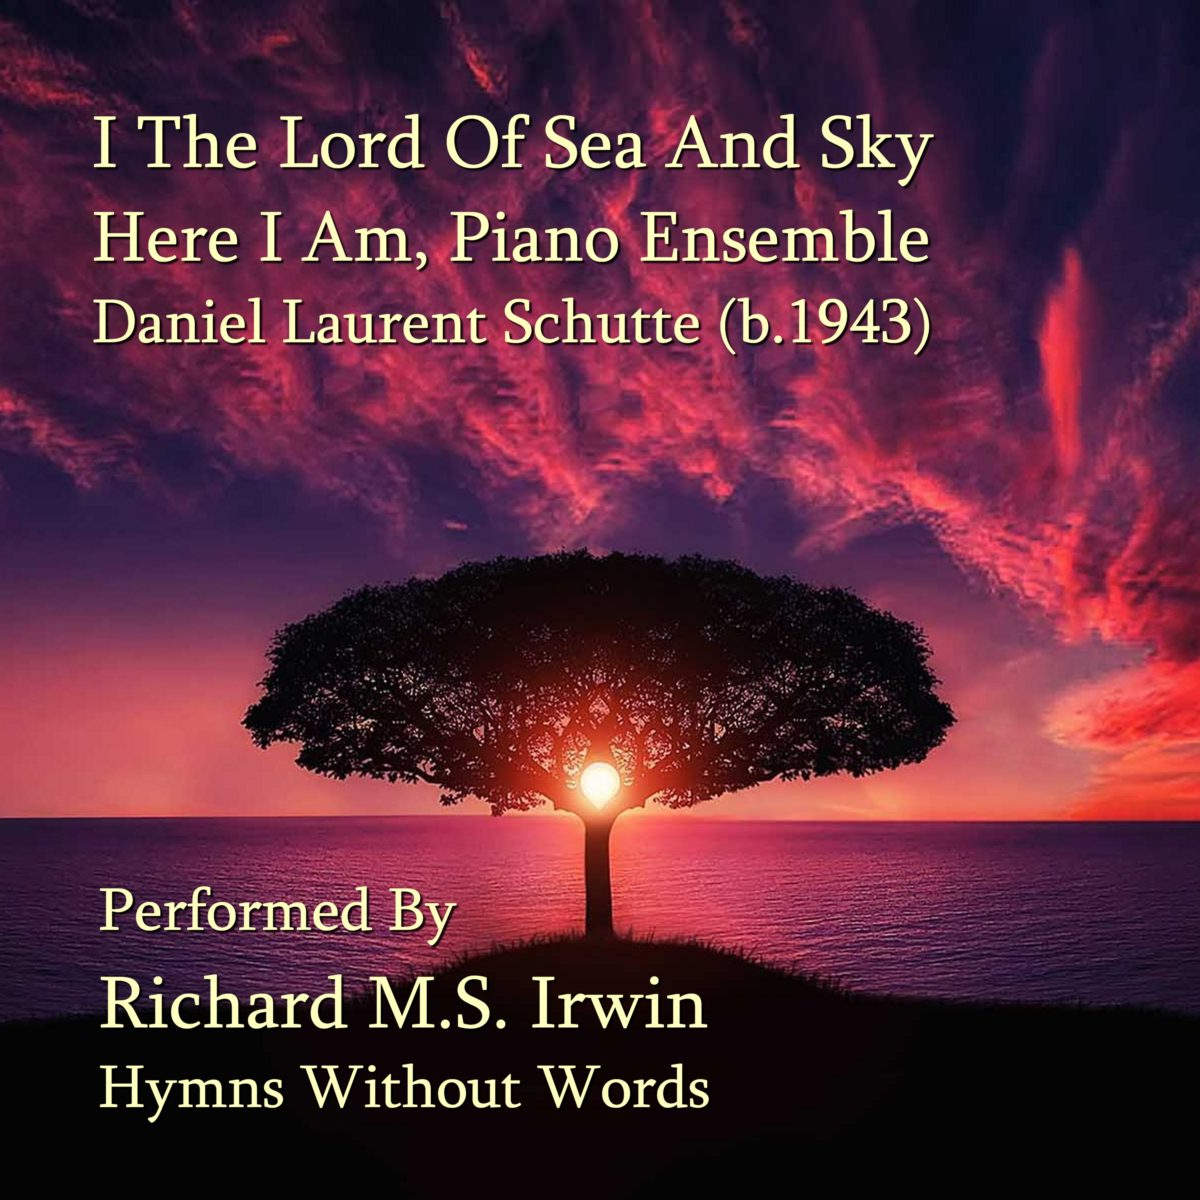 I The Lord Of Sea And Sky (Here I Am lord, Piano Ensemble, 3 Verses) –